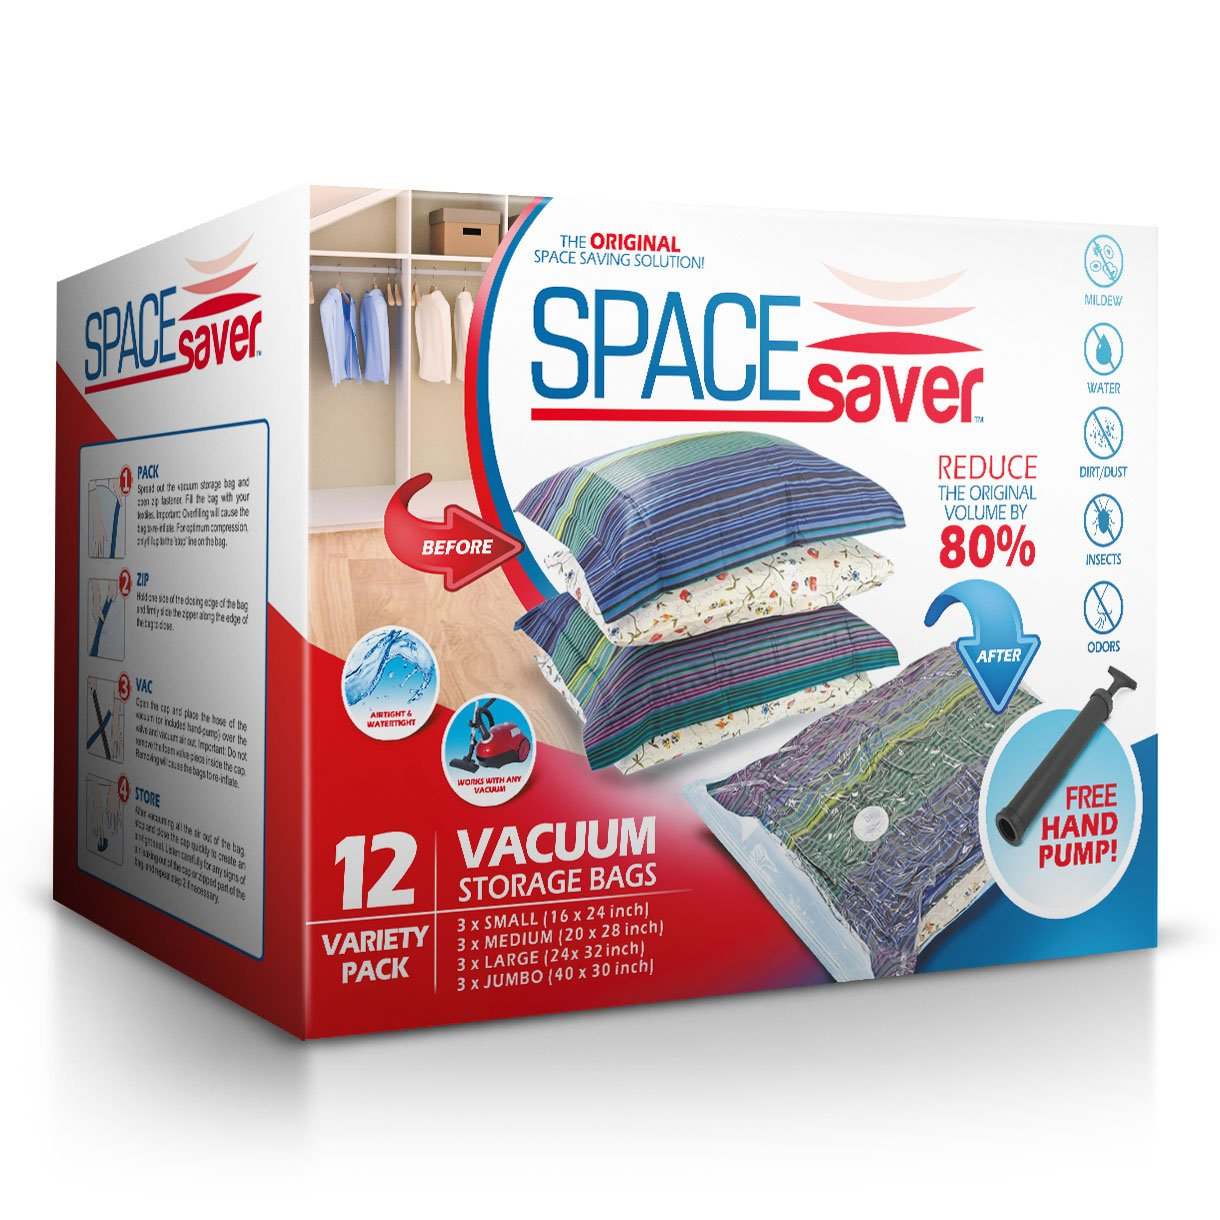 Spacesaver Premium Vacuum Storage Bags (3 x Small, 3 x Medium, 3 x Large, 3 x Jumbo) (80% More Storage Than Leading Brands) Free Hand Pump for Travel! (Variety 12 Pack) by Spacesaver